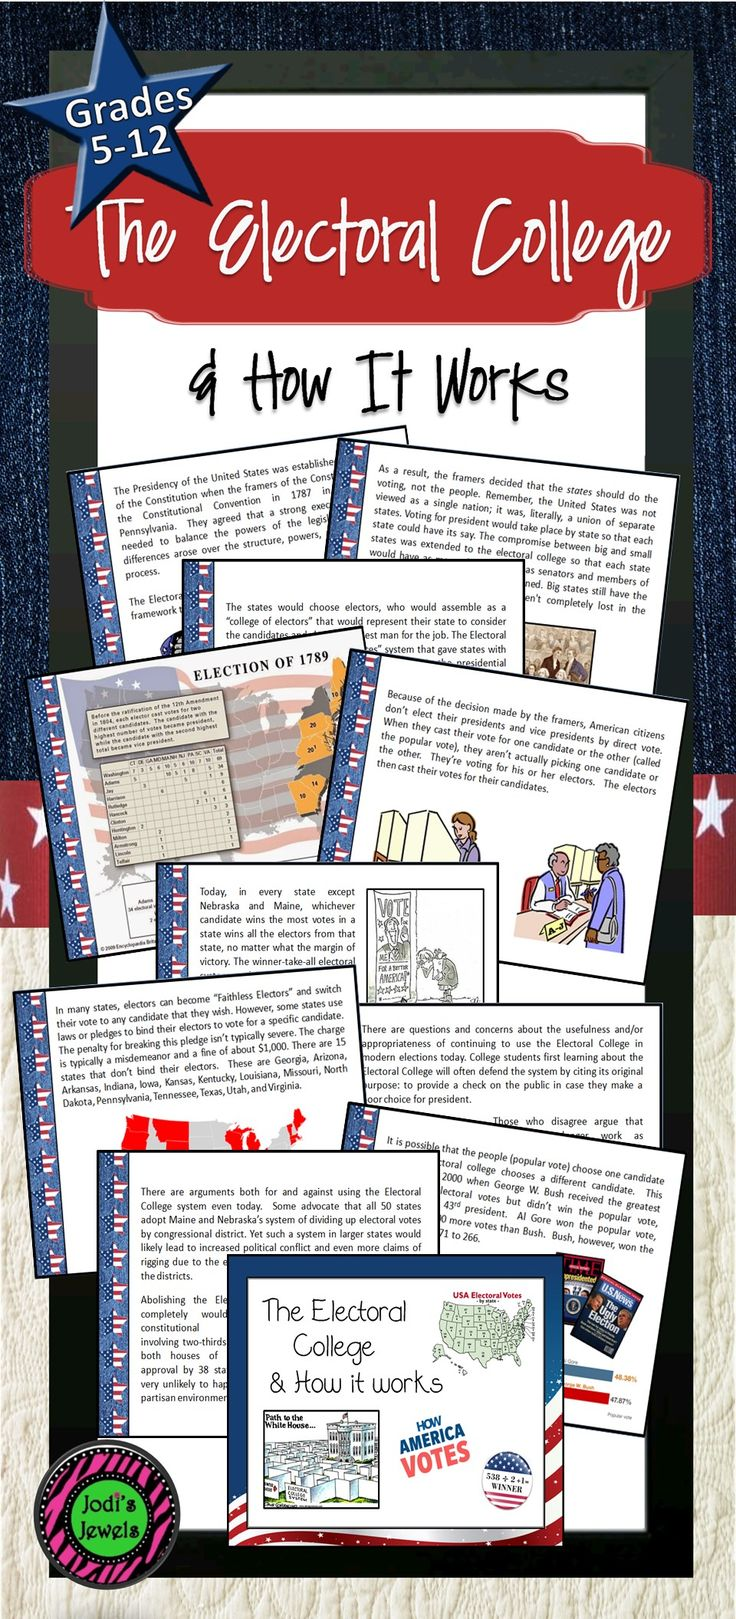 best ideas about the electoral college electoral kid friendly ppt presentation about the electoral college and how it affects american politics historical